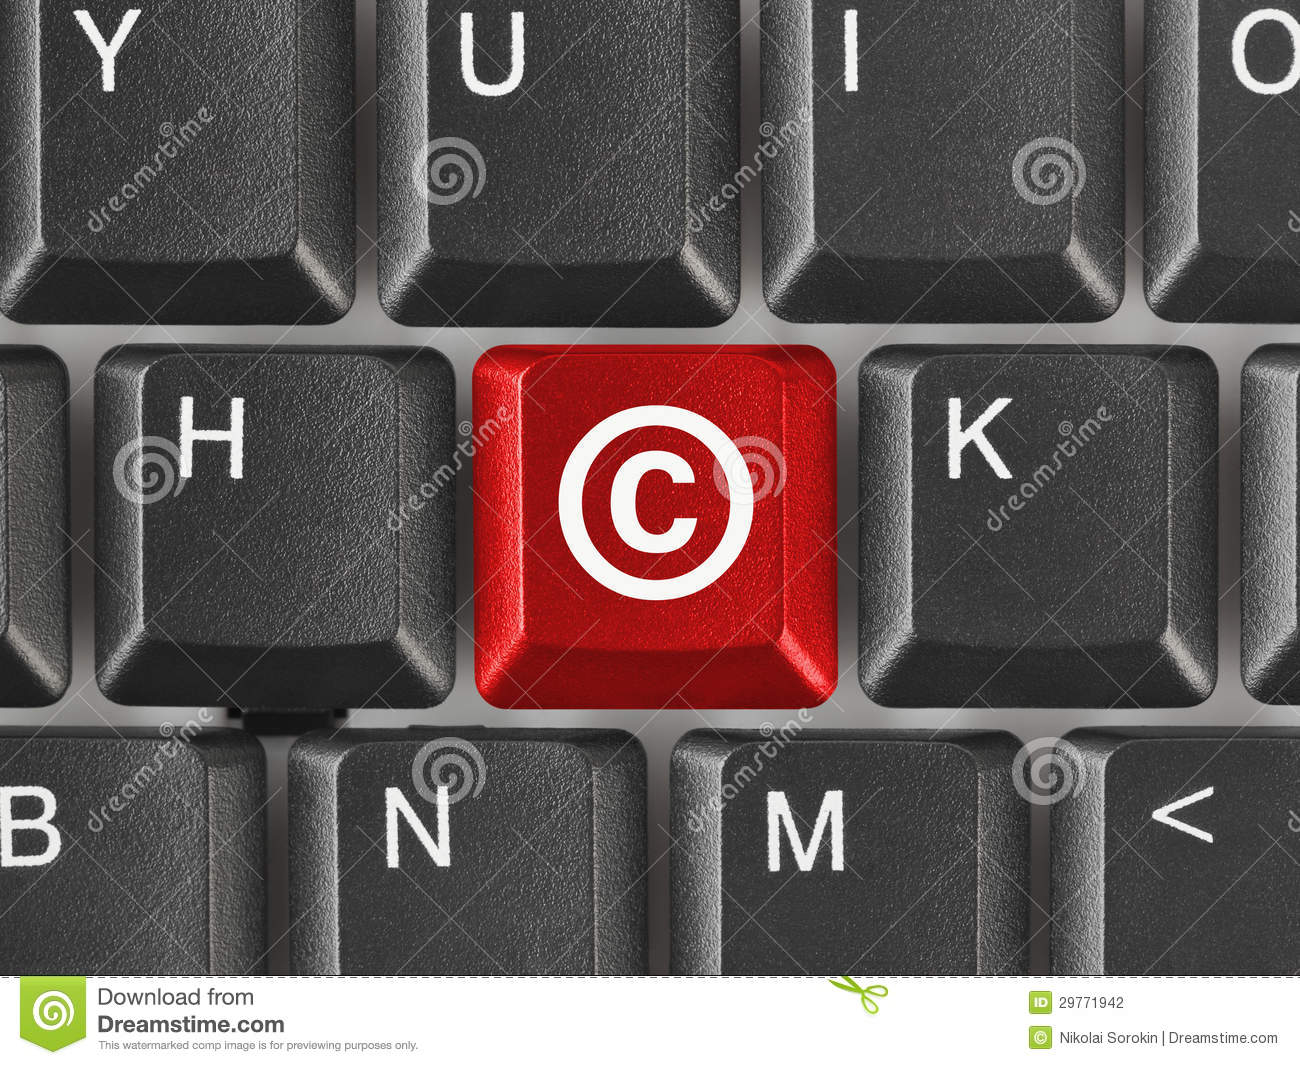 how to create copyright symbol on keyboard